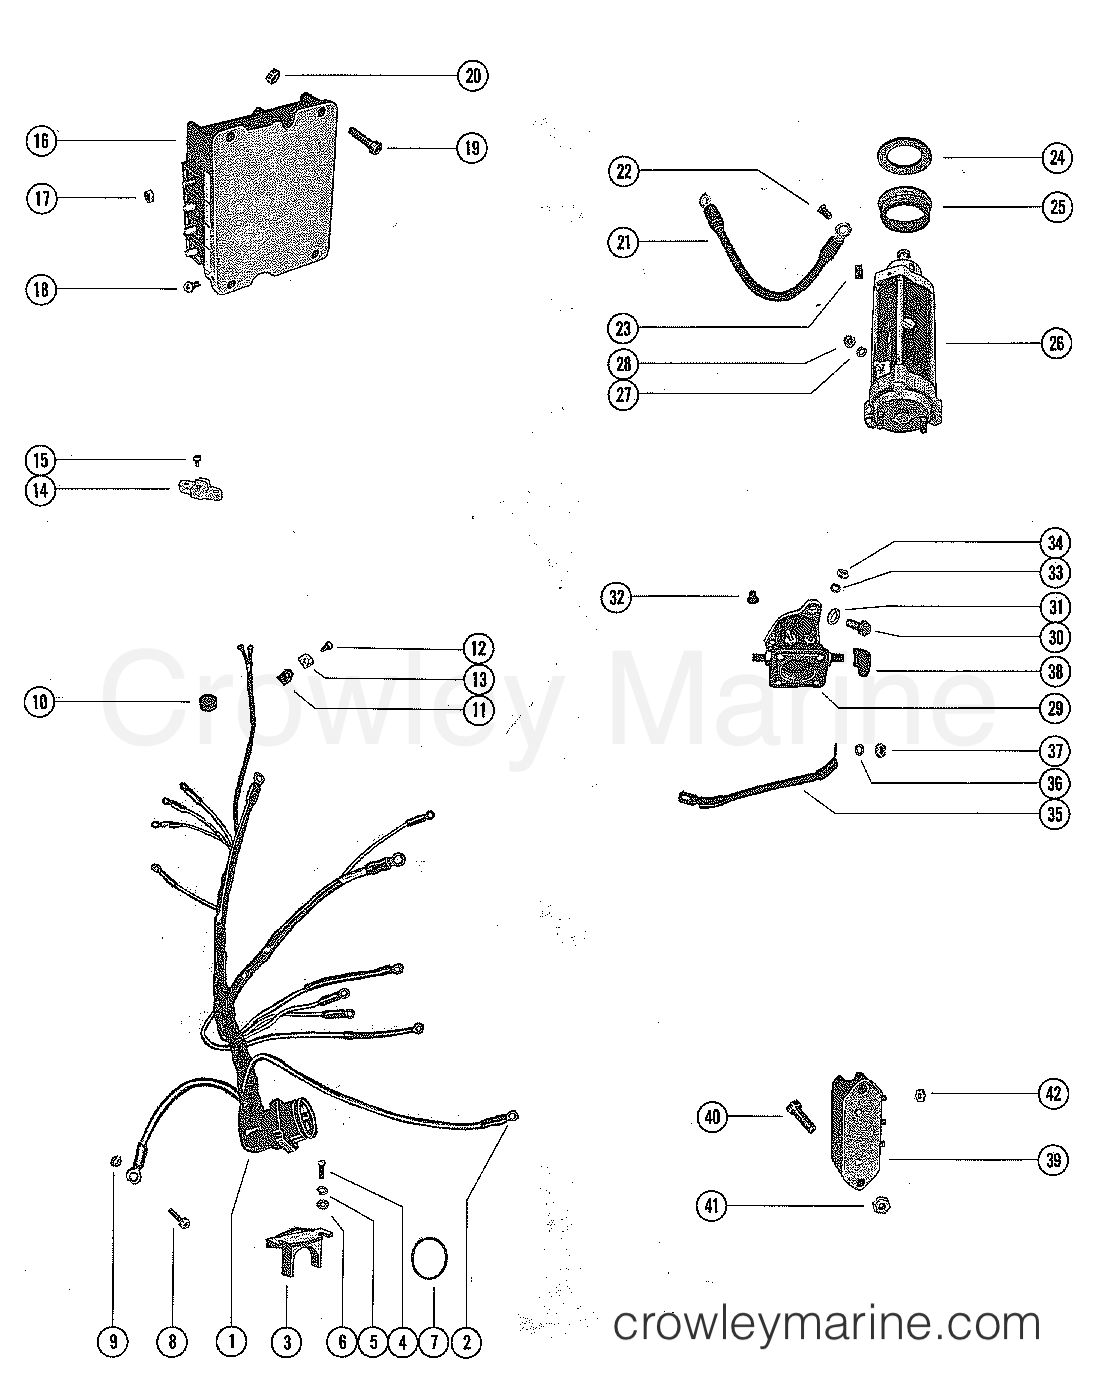 cSgFF30y 2000 f350 wiring harness wiring diagrams 1994 ford f350 7.3 glow plug wiring harness at nearapp.co